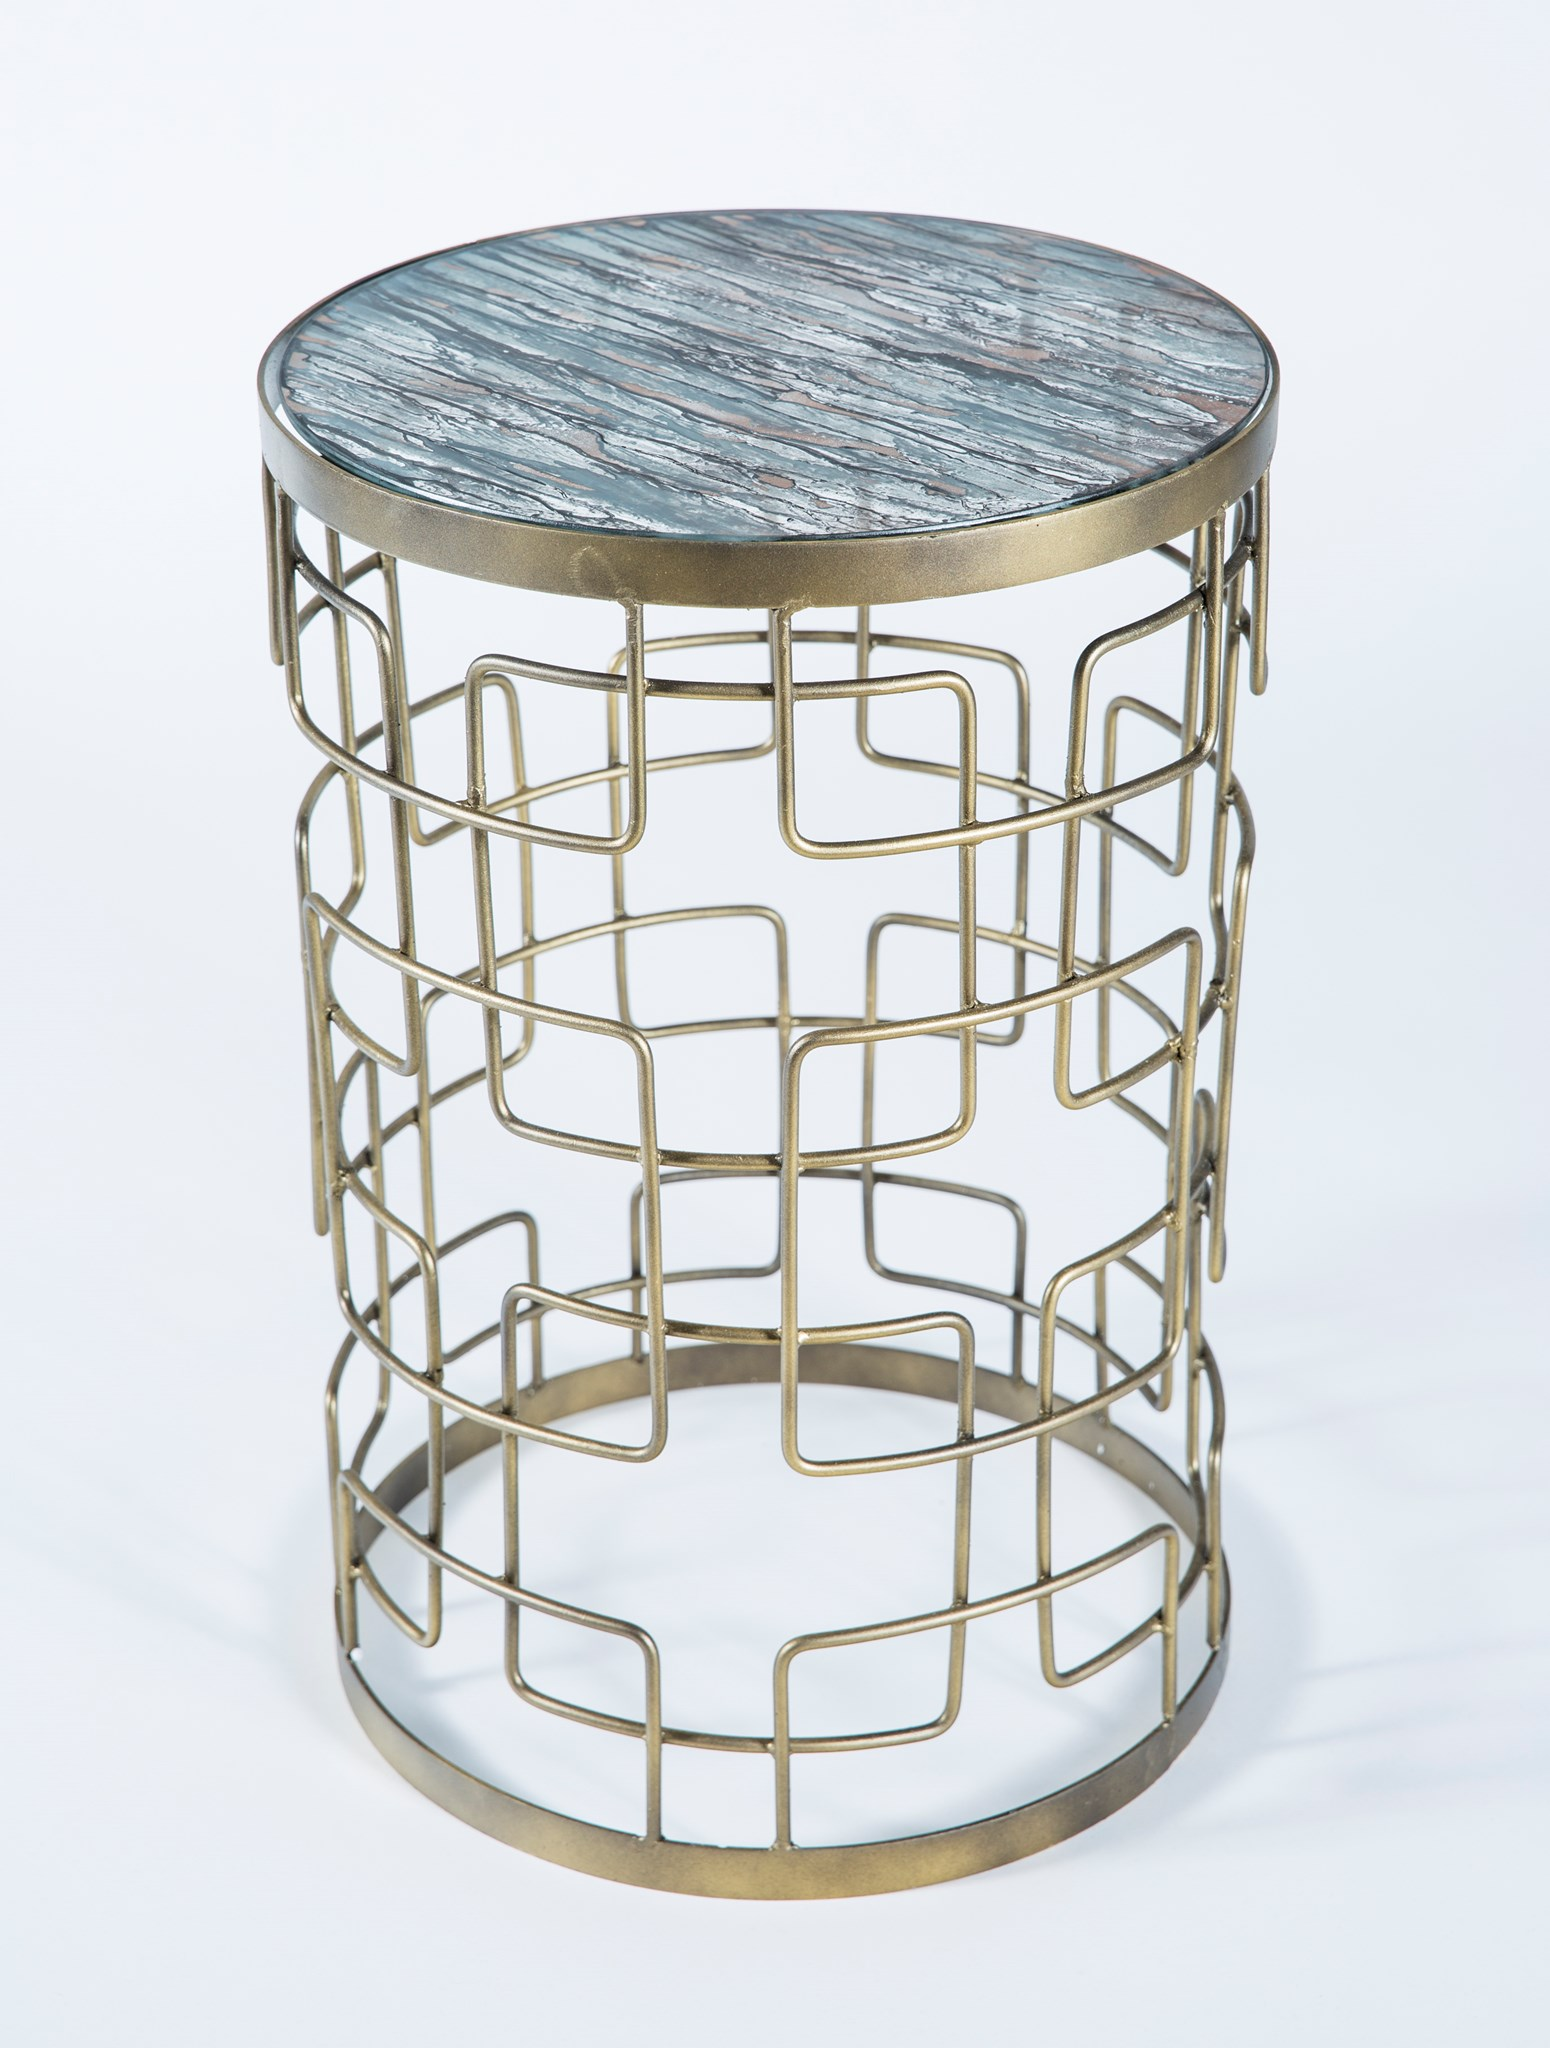 grid pattern accent table antique brass with glass top concord finish boulevard urban living standing lamp custom made trestle metal wine rack furniture outdoor side ice bucket